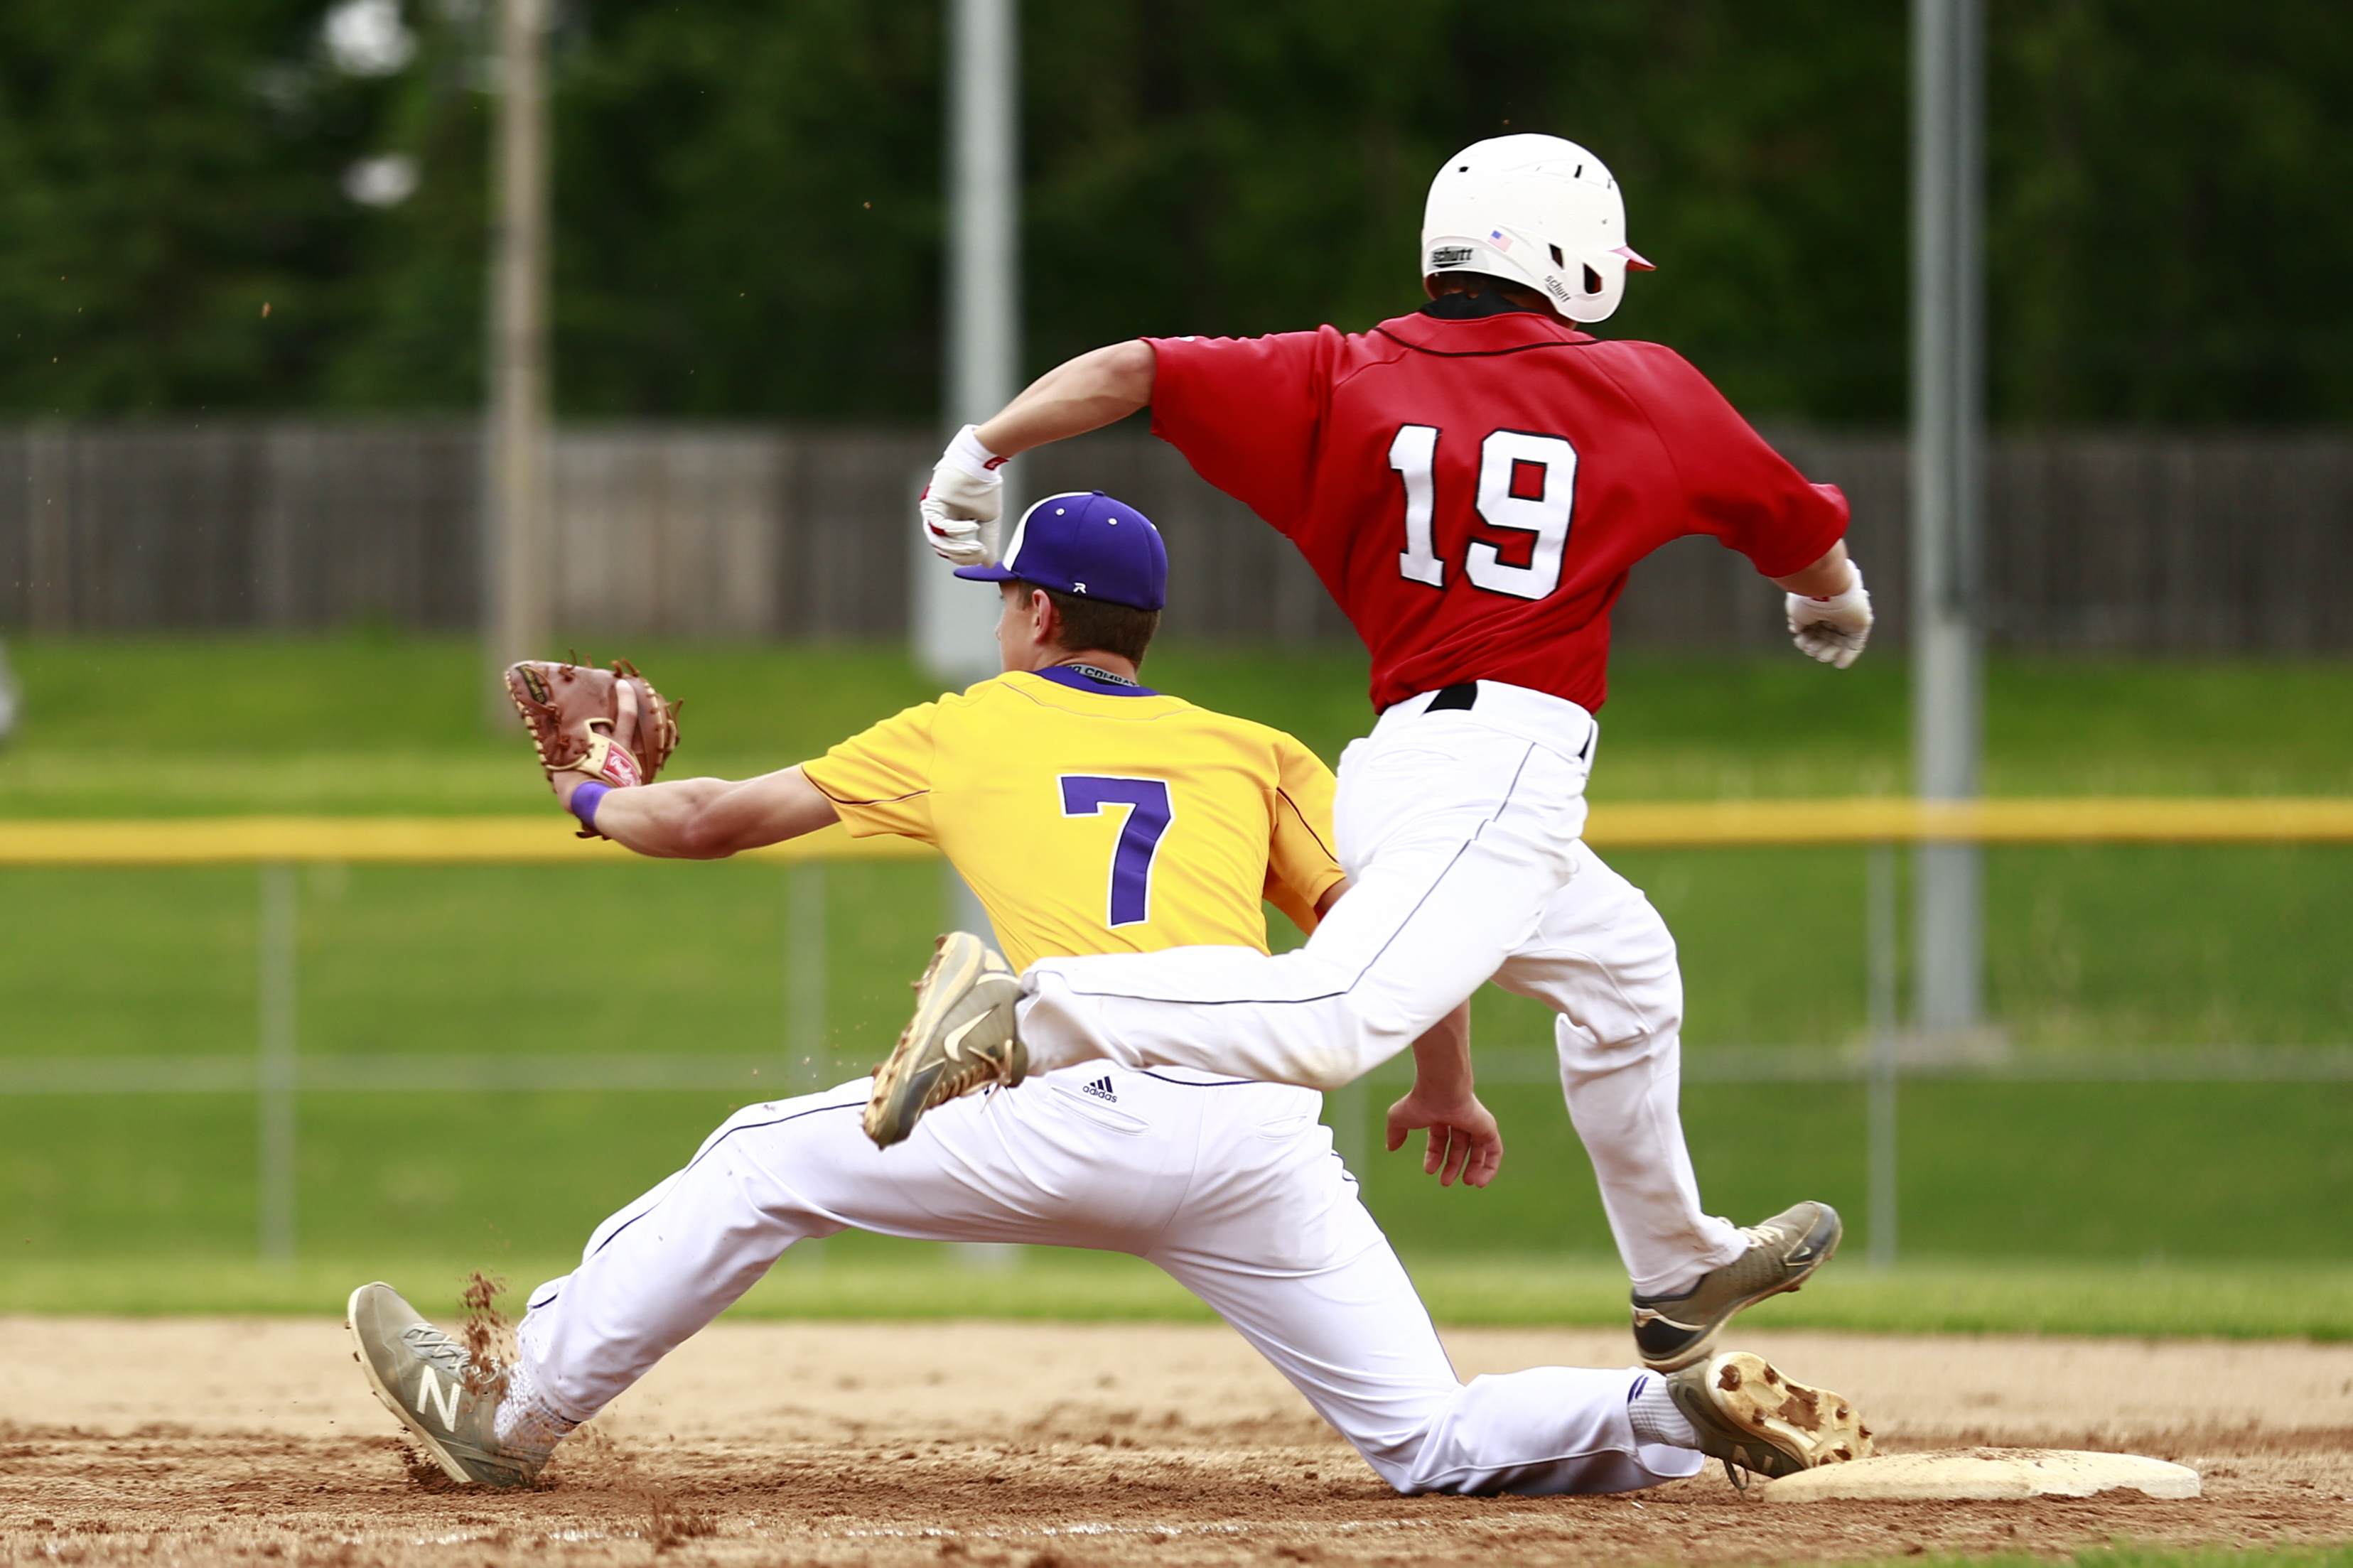 Spenser Larson (19) of Eden Prairie makes it safely to first base in a very close play, avoiding getting tagged out by Cole Peters (7). Photo by Chris Juhn